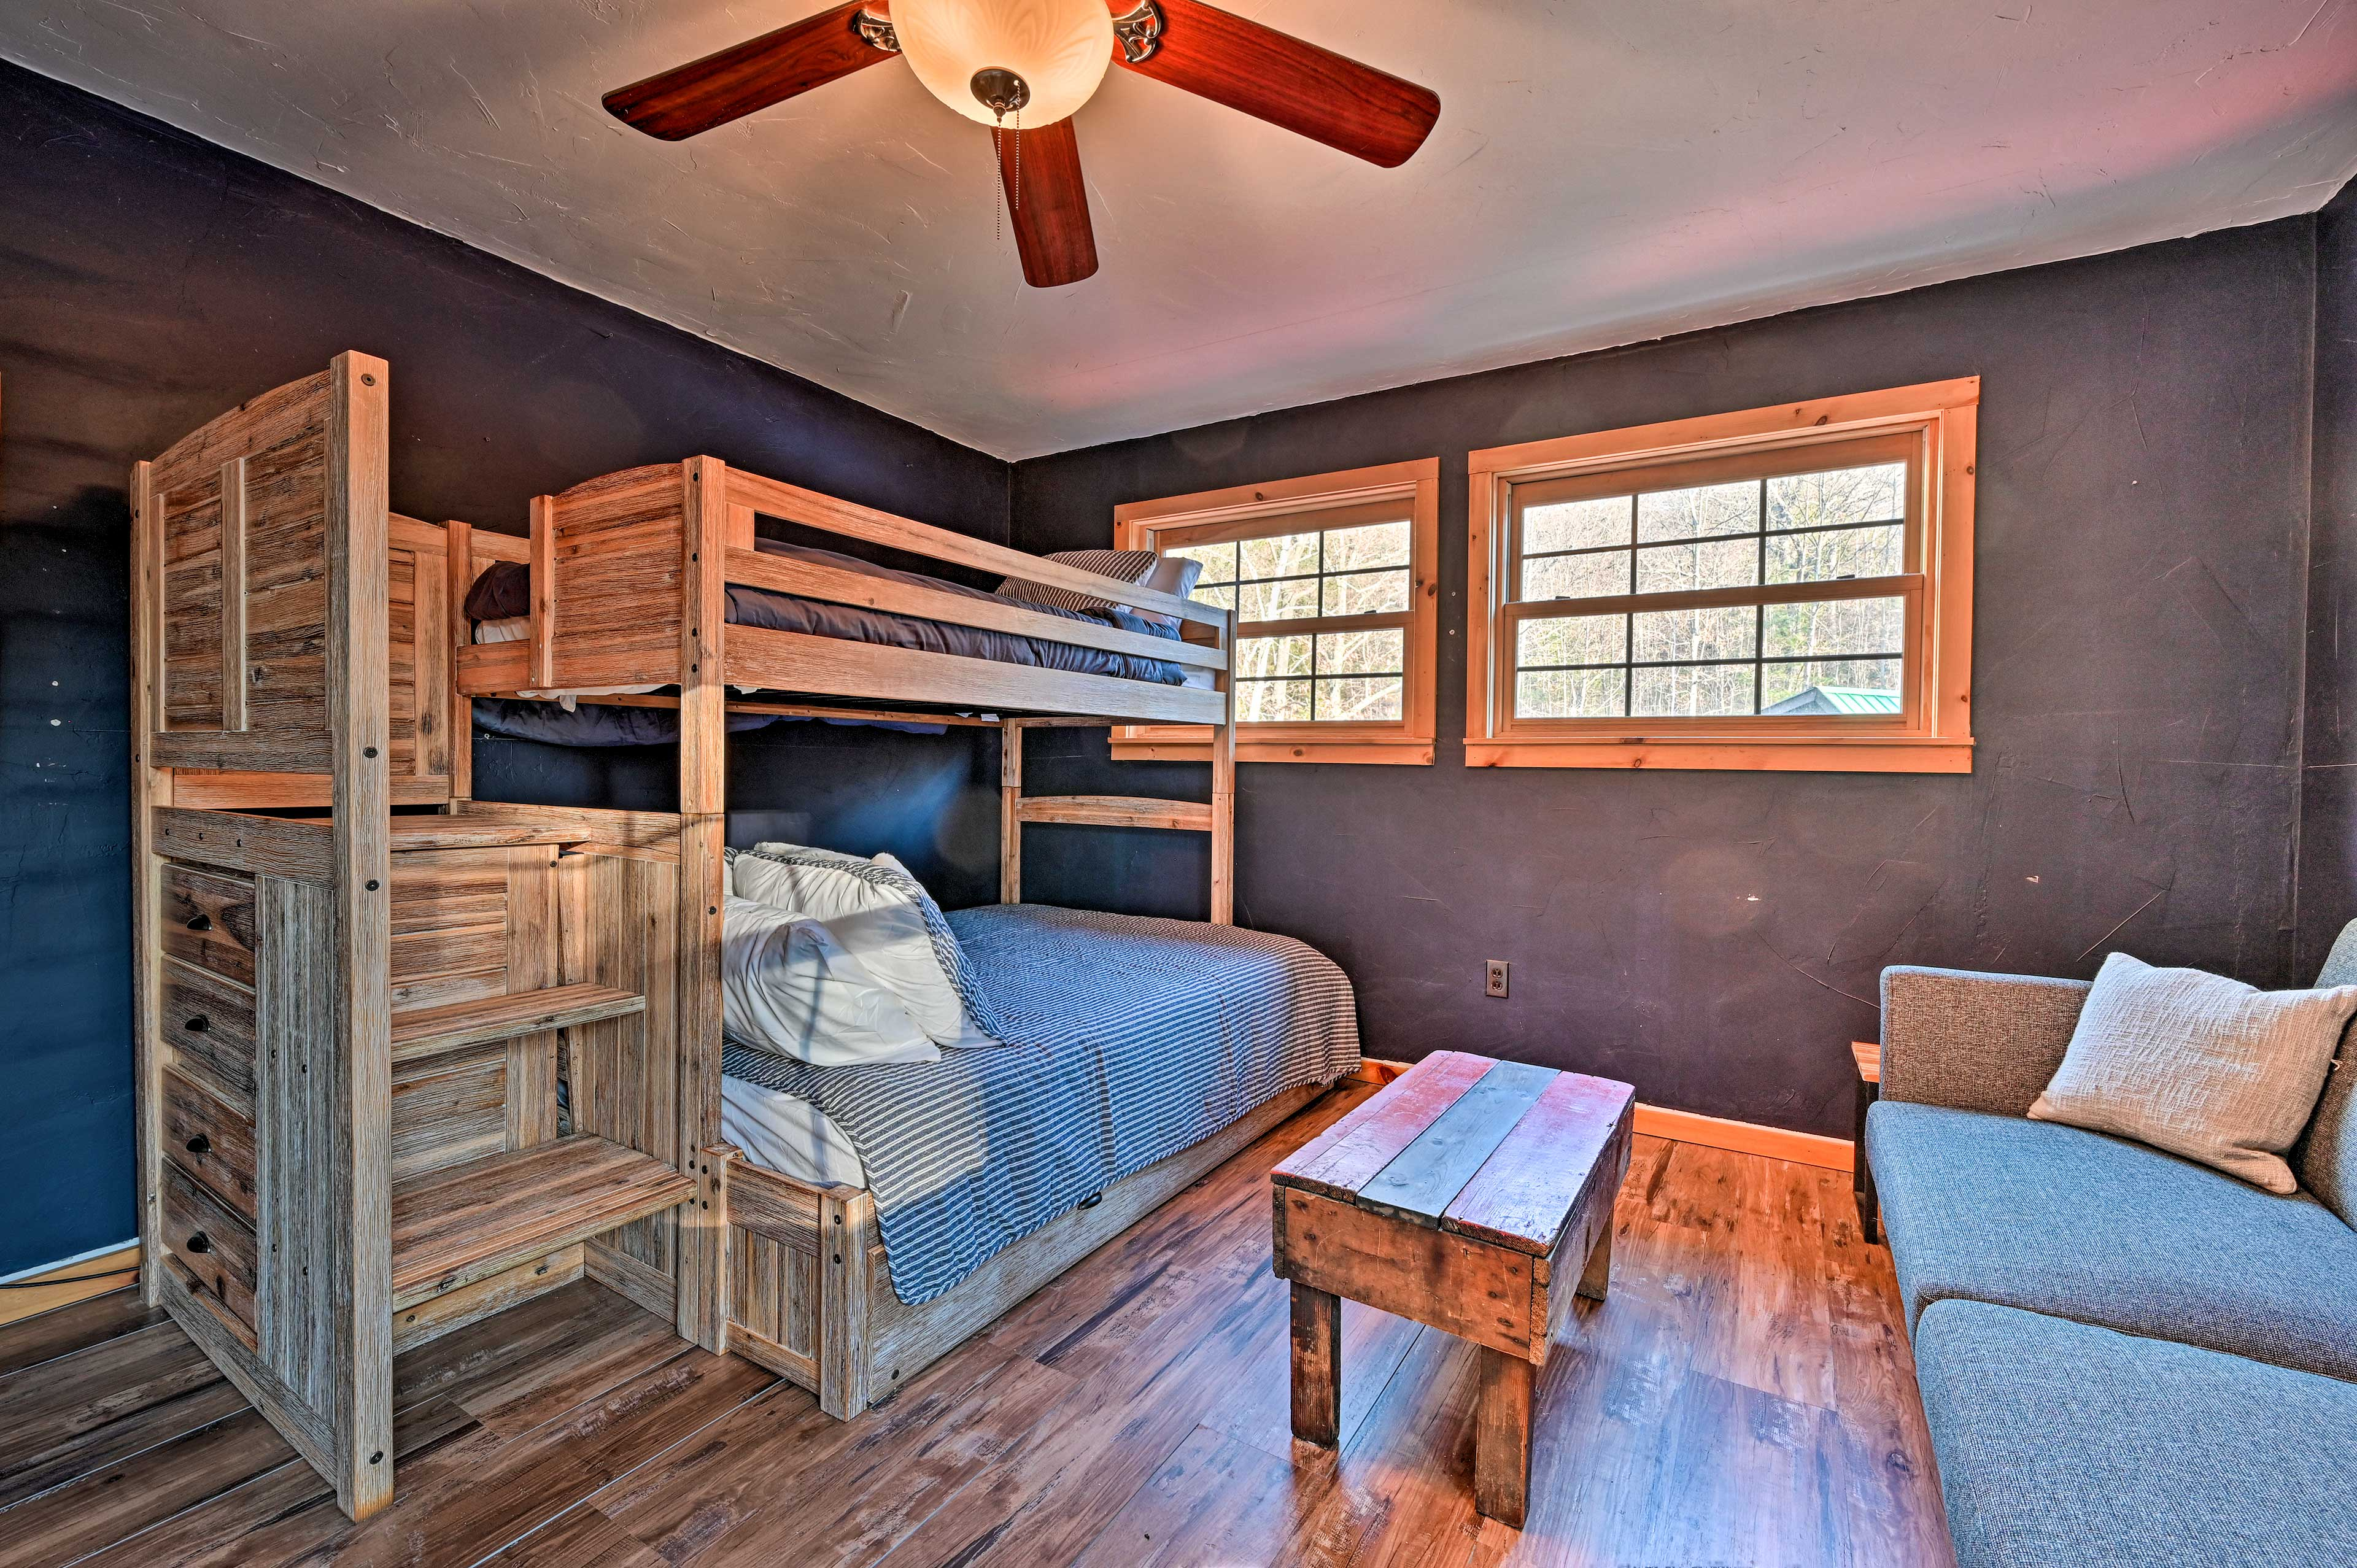 Four guests can sleep soundly in the twin/full bunk bed w/ a twin trundle.